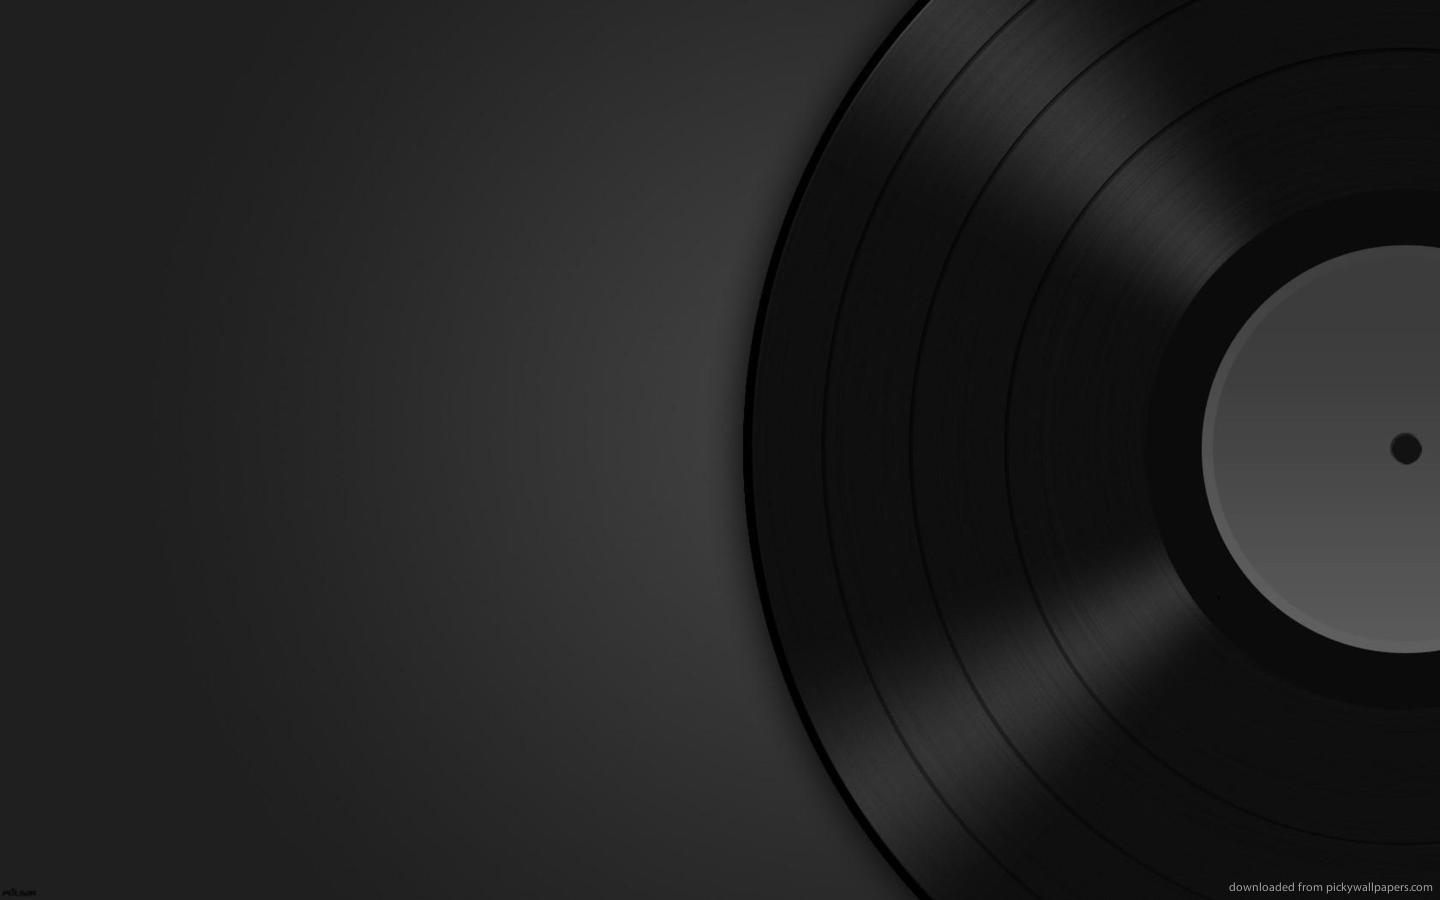 Download 1440x900 Vinyl Gramophone Record wallpaper 1440x900